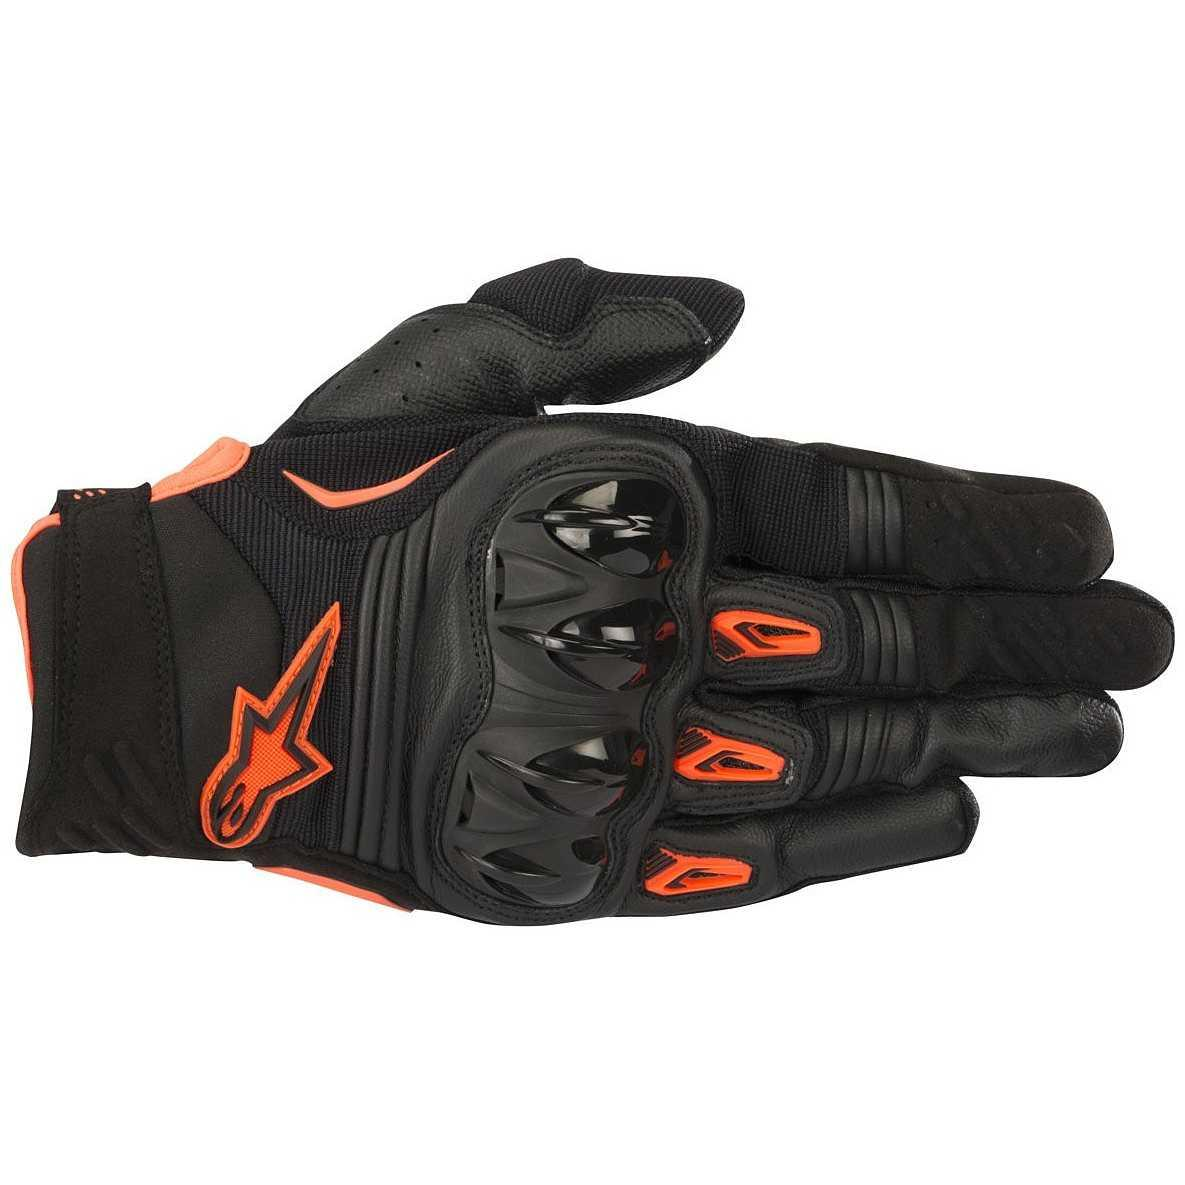 GUANTI MOTO CROSS ALPINESTARS 2018 MEGAWATT BLACK ANTHRACITE ORANGE FLUO